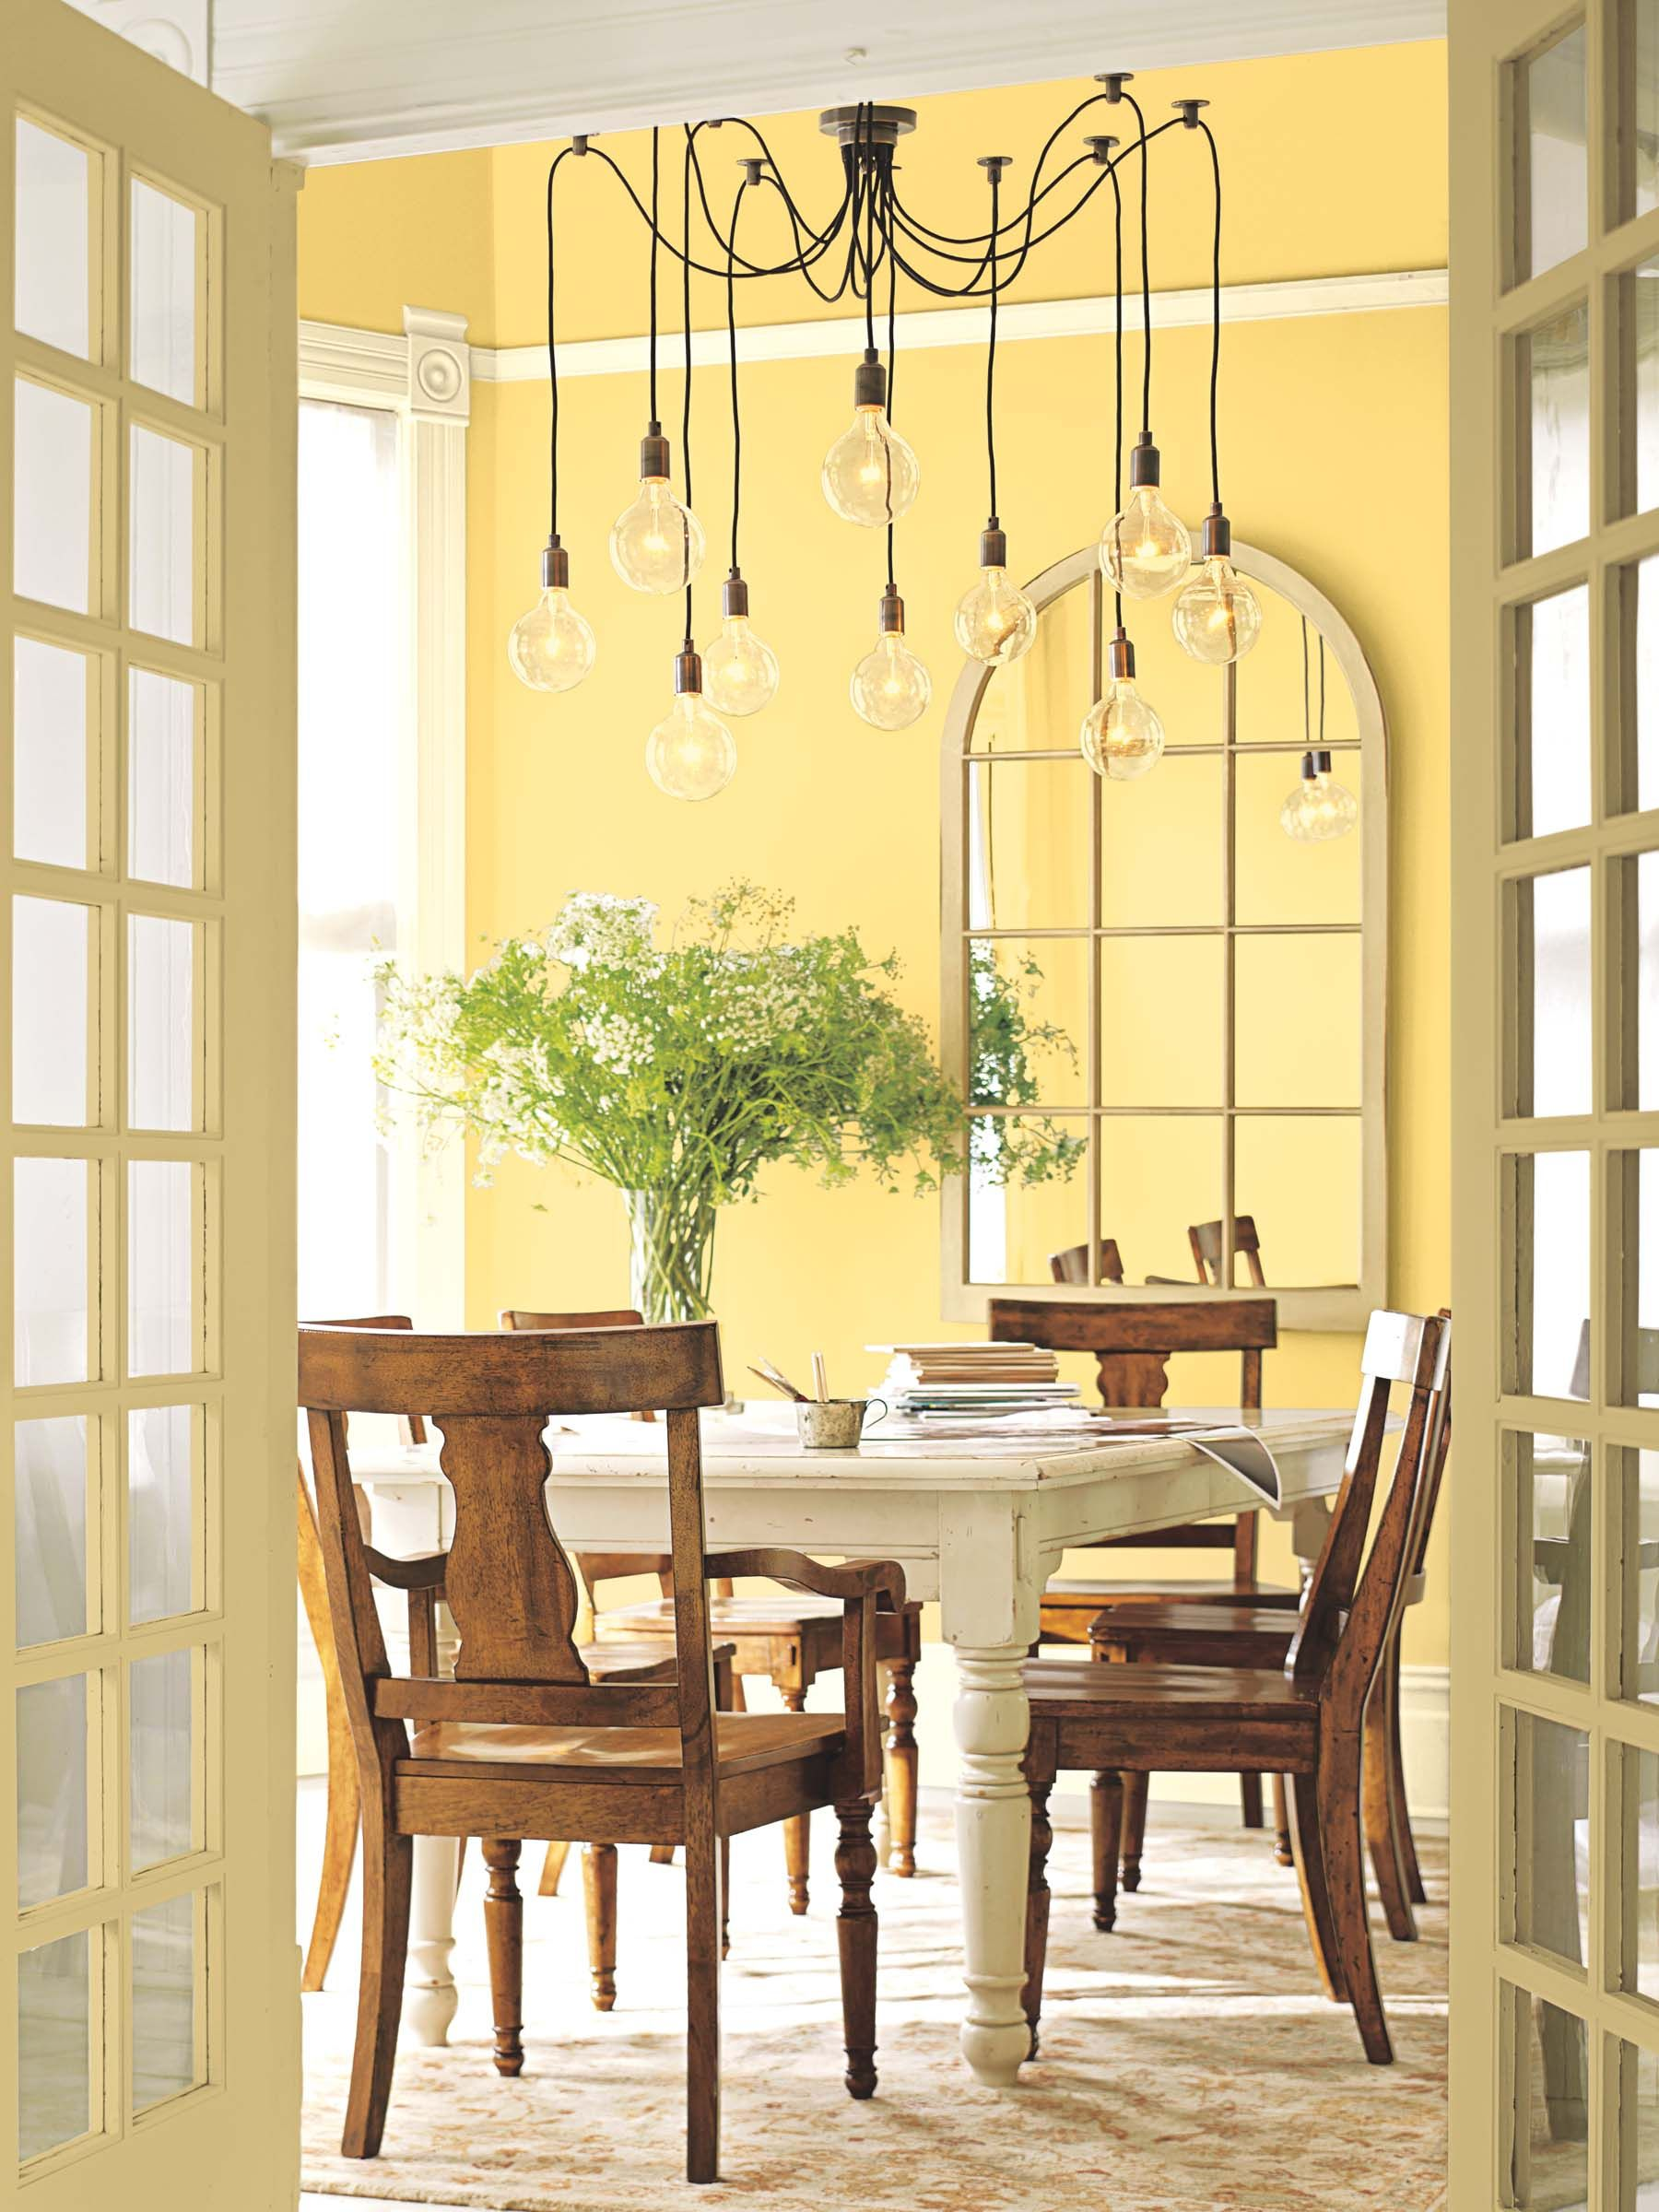 golden honey from benjamin moore on the wall. sunny yet class, the